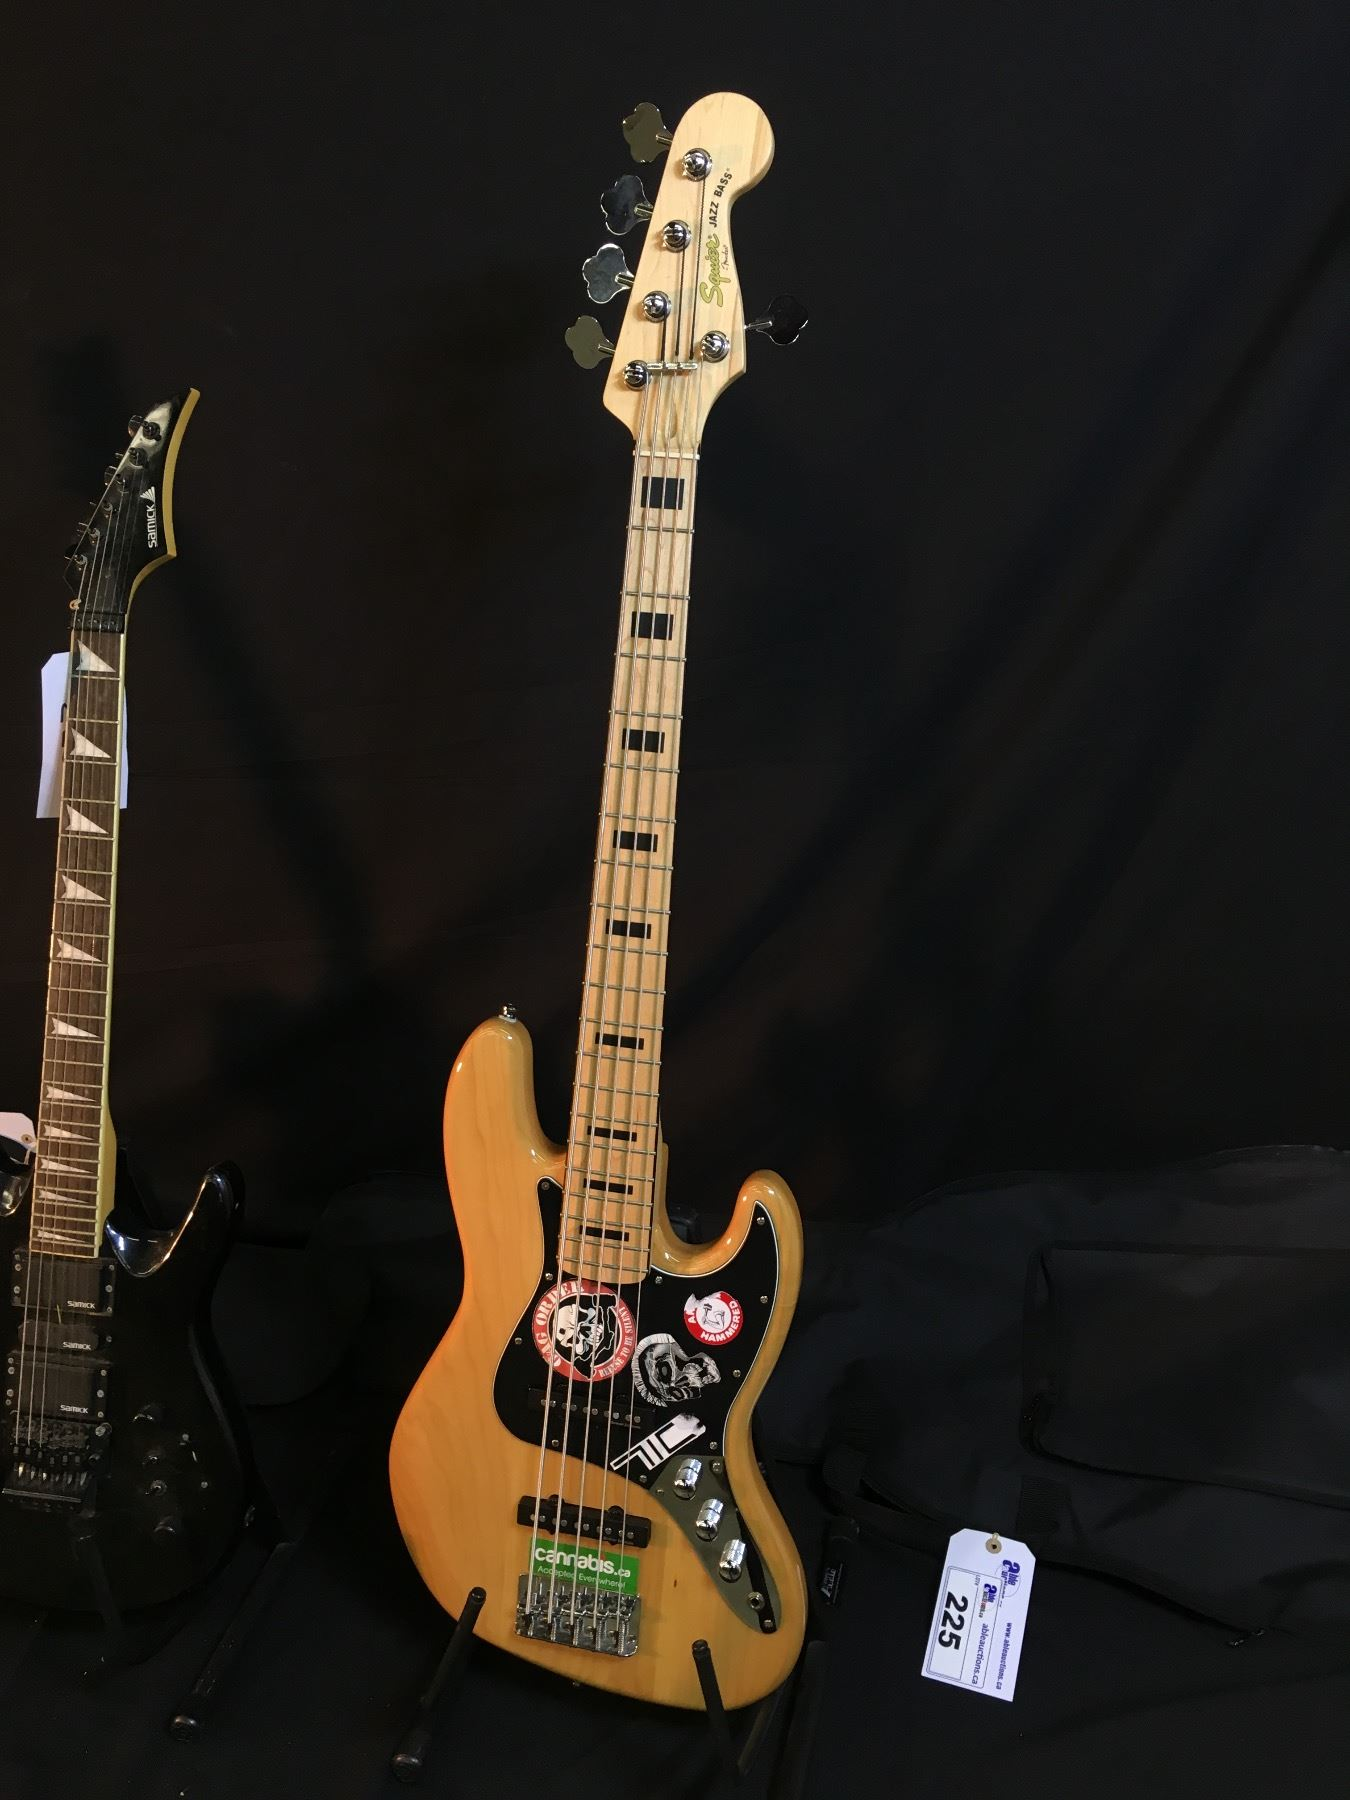 hight resolution of  image 2 3 guitars squier 5 string jazz bass with soft shell case